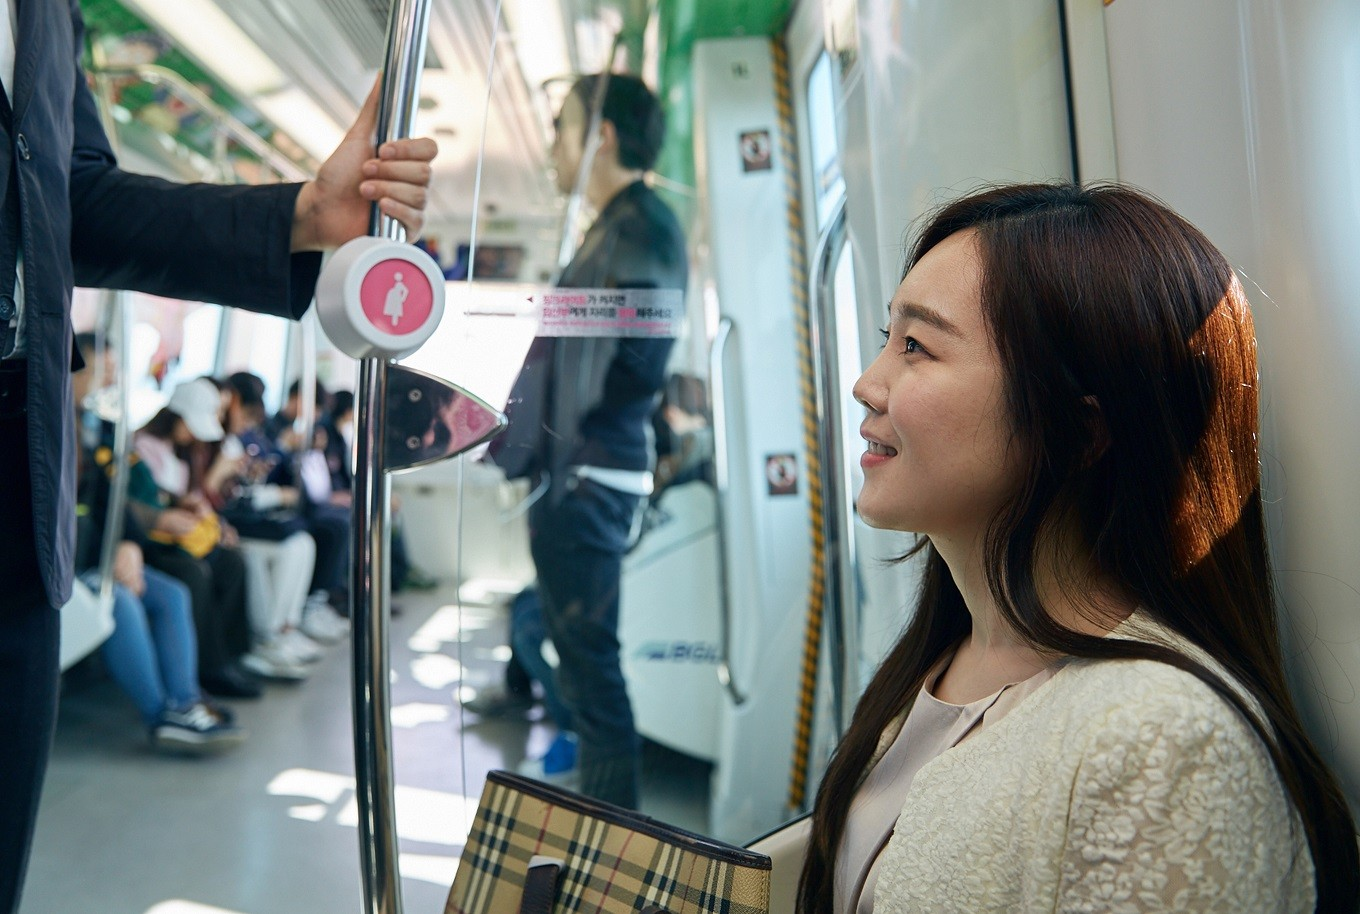 South Korea uses technology to help pregnant women get seats